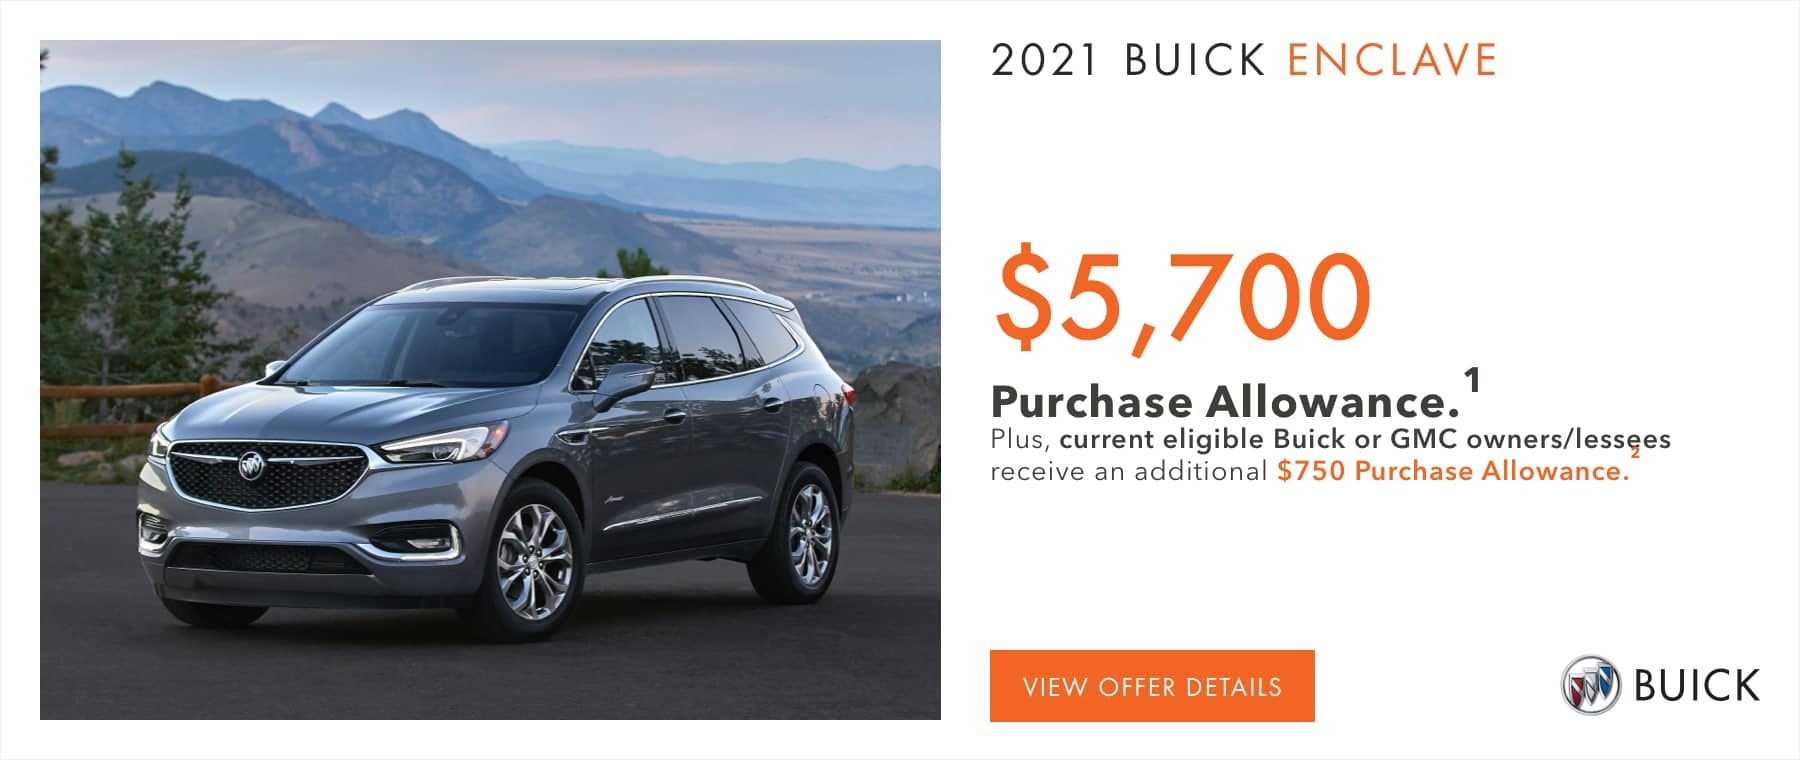 $5,700 Purchase Allowance.1 Plus, current eligible Buick or GMC owners/lessees receive an additional $750 Purchase Allowance.2